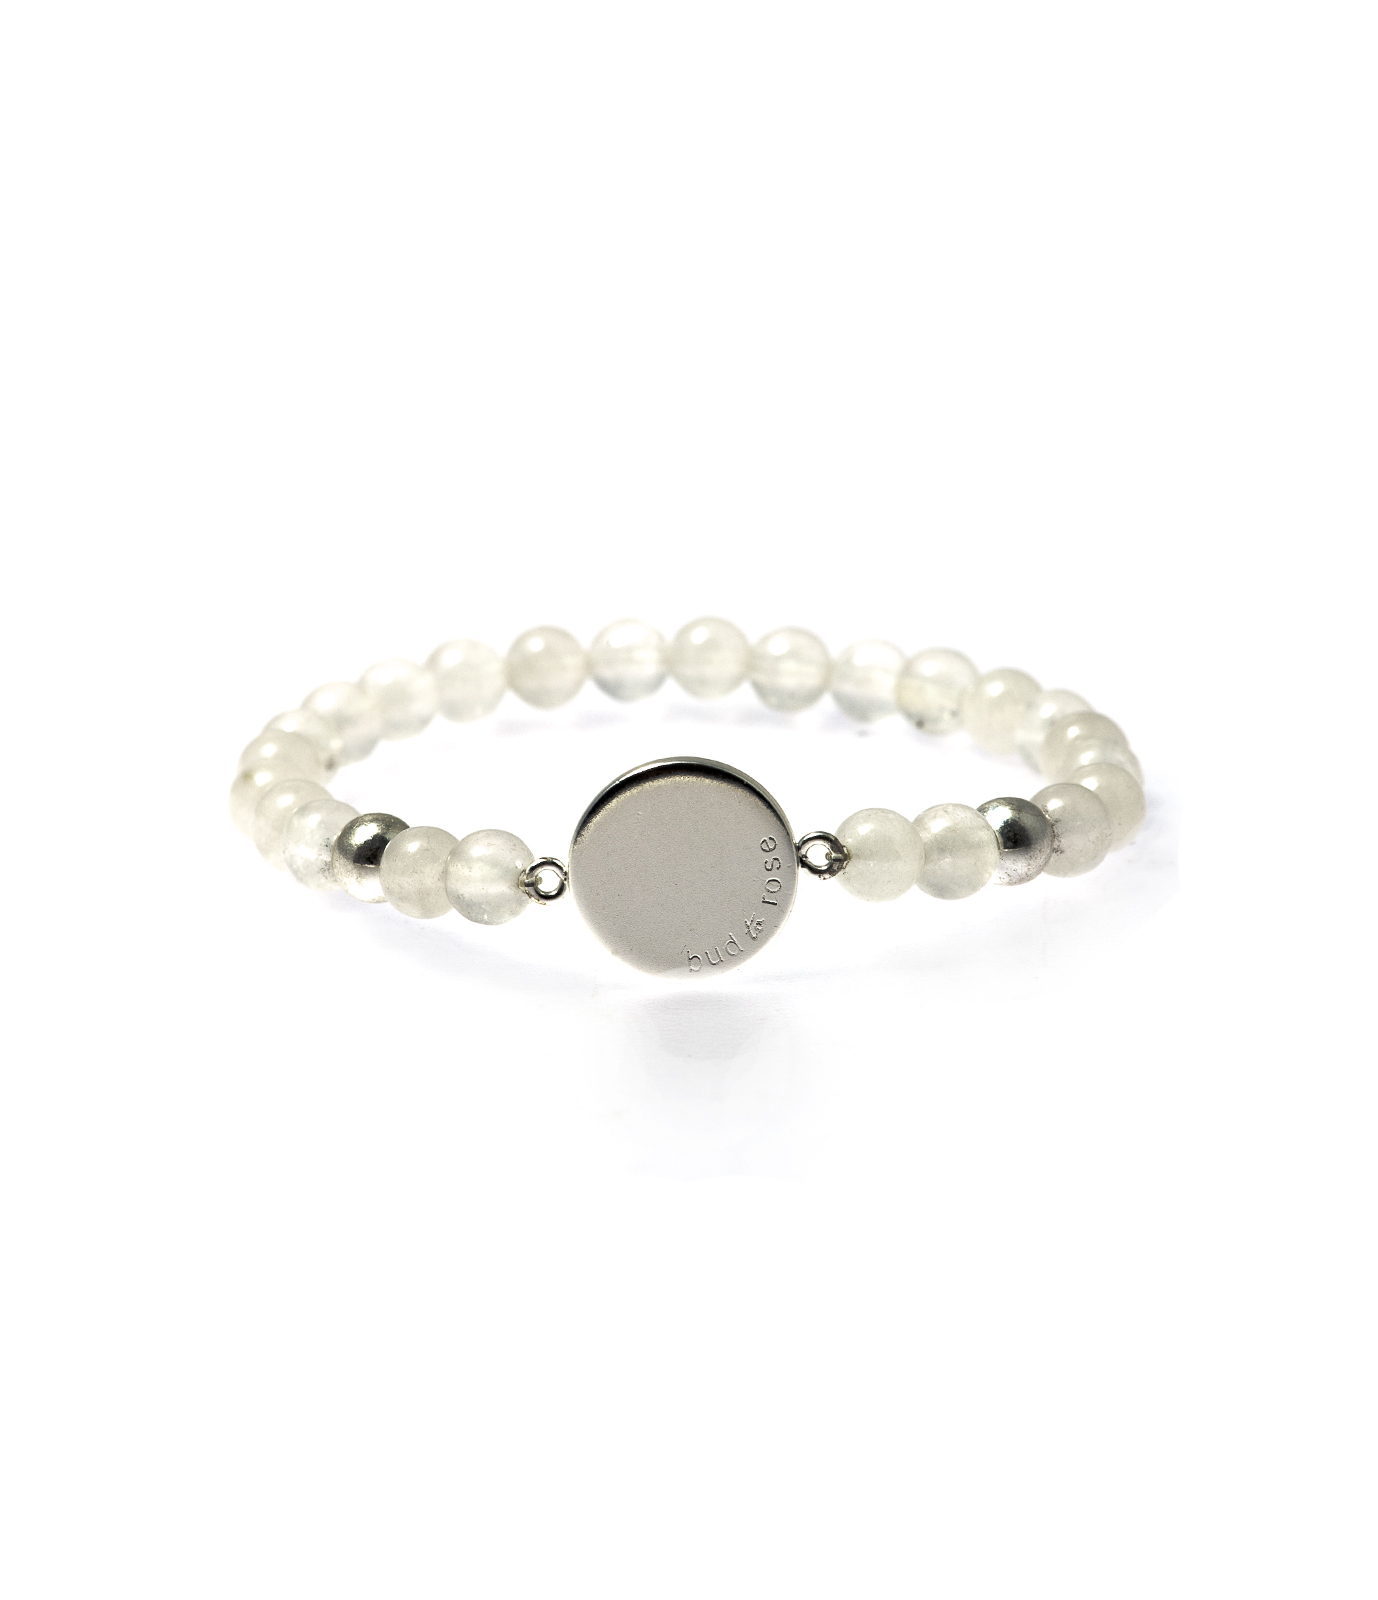 Bud to rose Armband Jaxie frost /silver